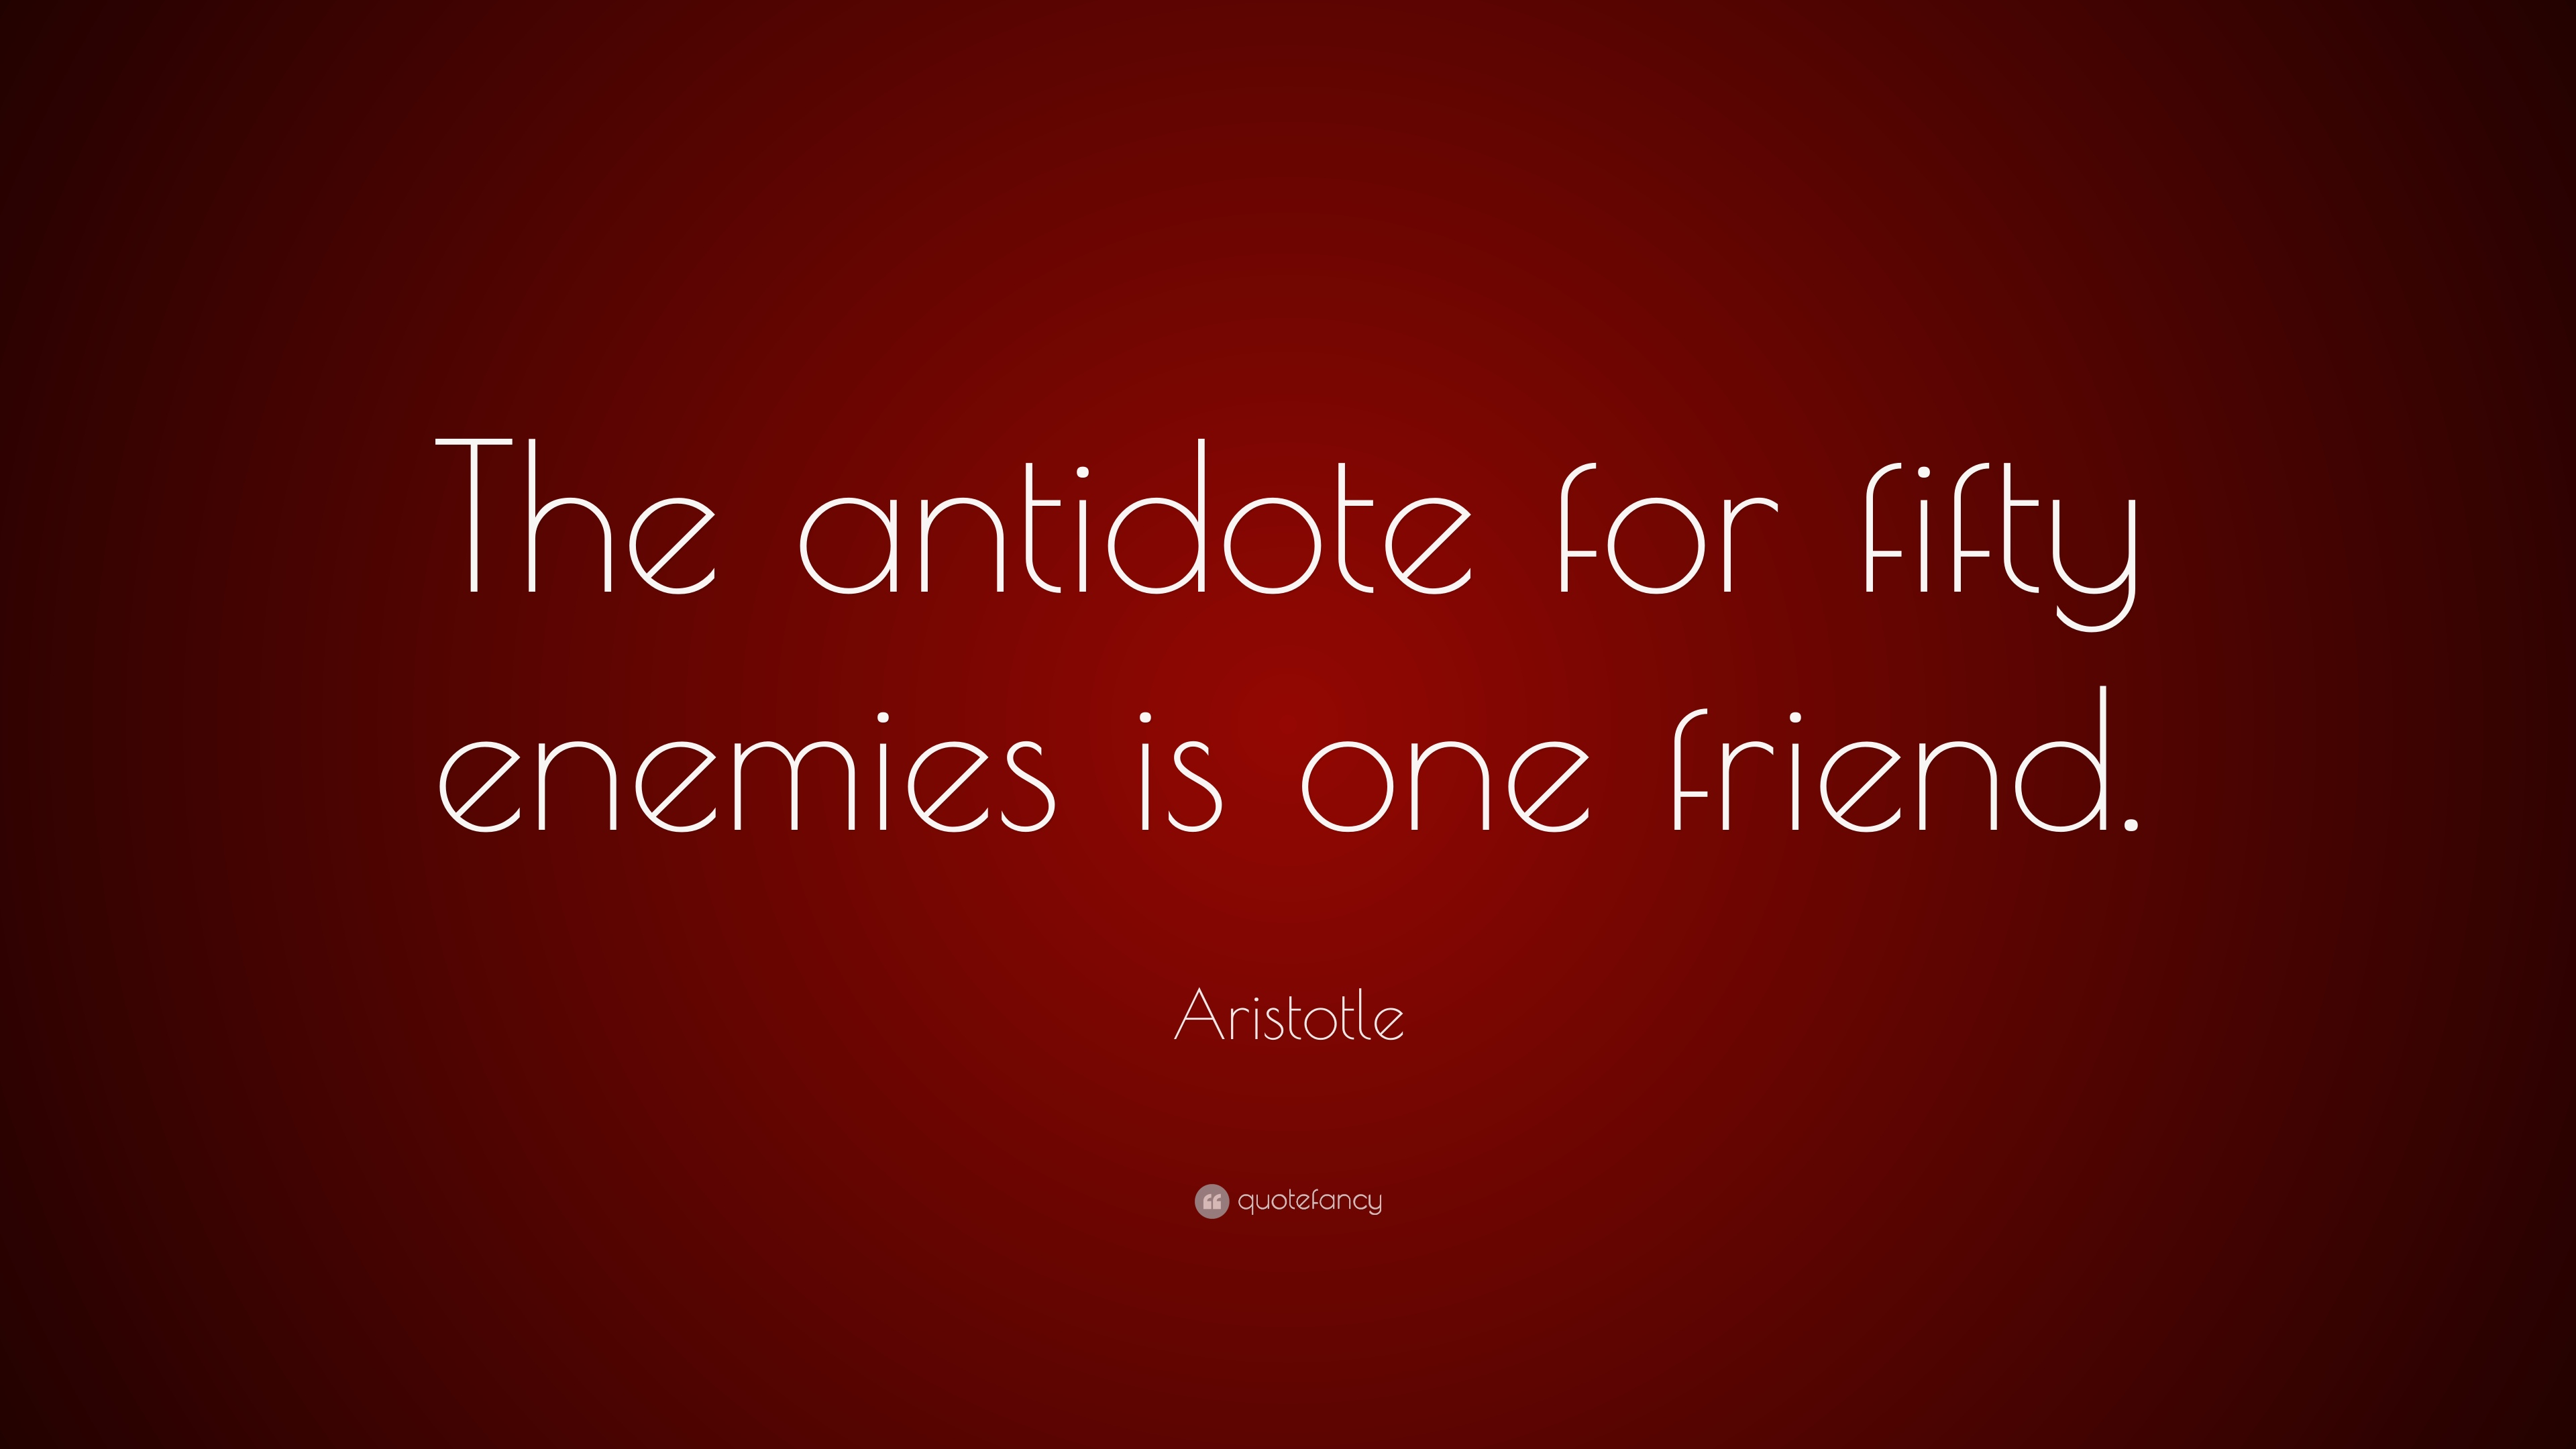 Aristotle Quote About Friends